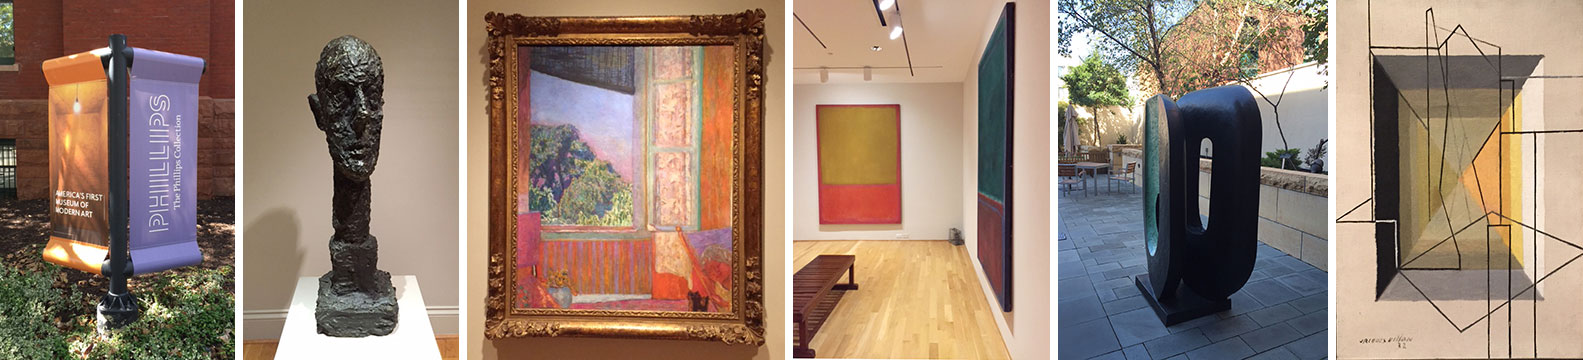 A few of the many amazing works that delighted me on my visit to The Phillips Collection.